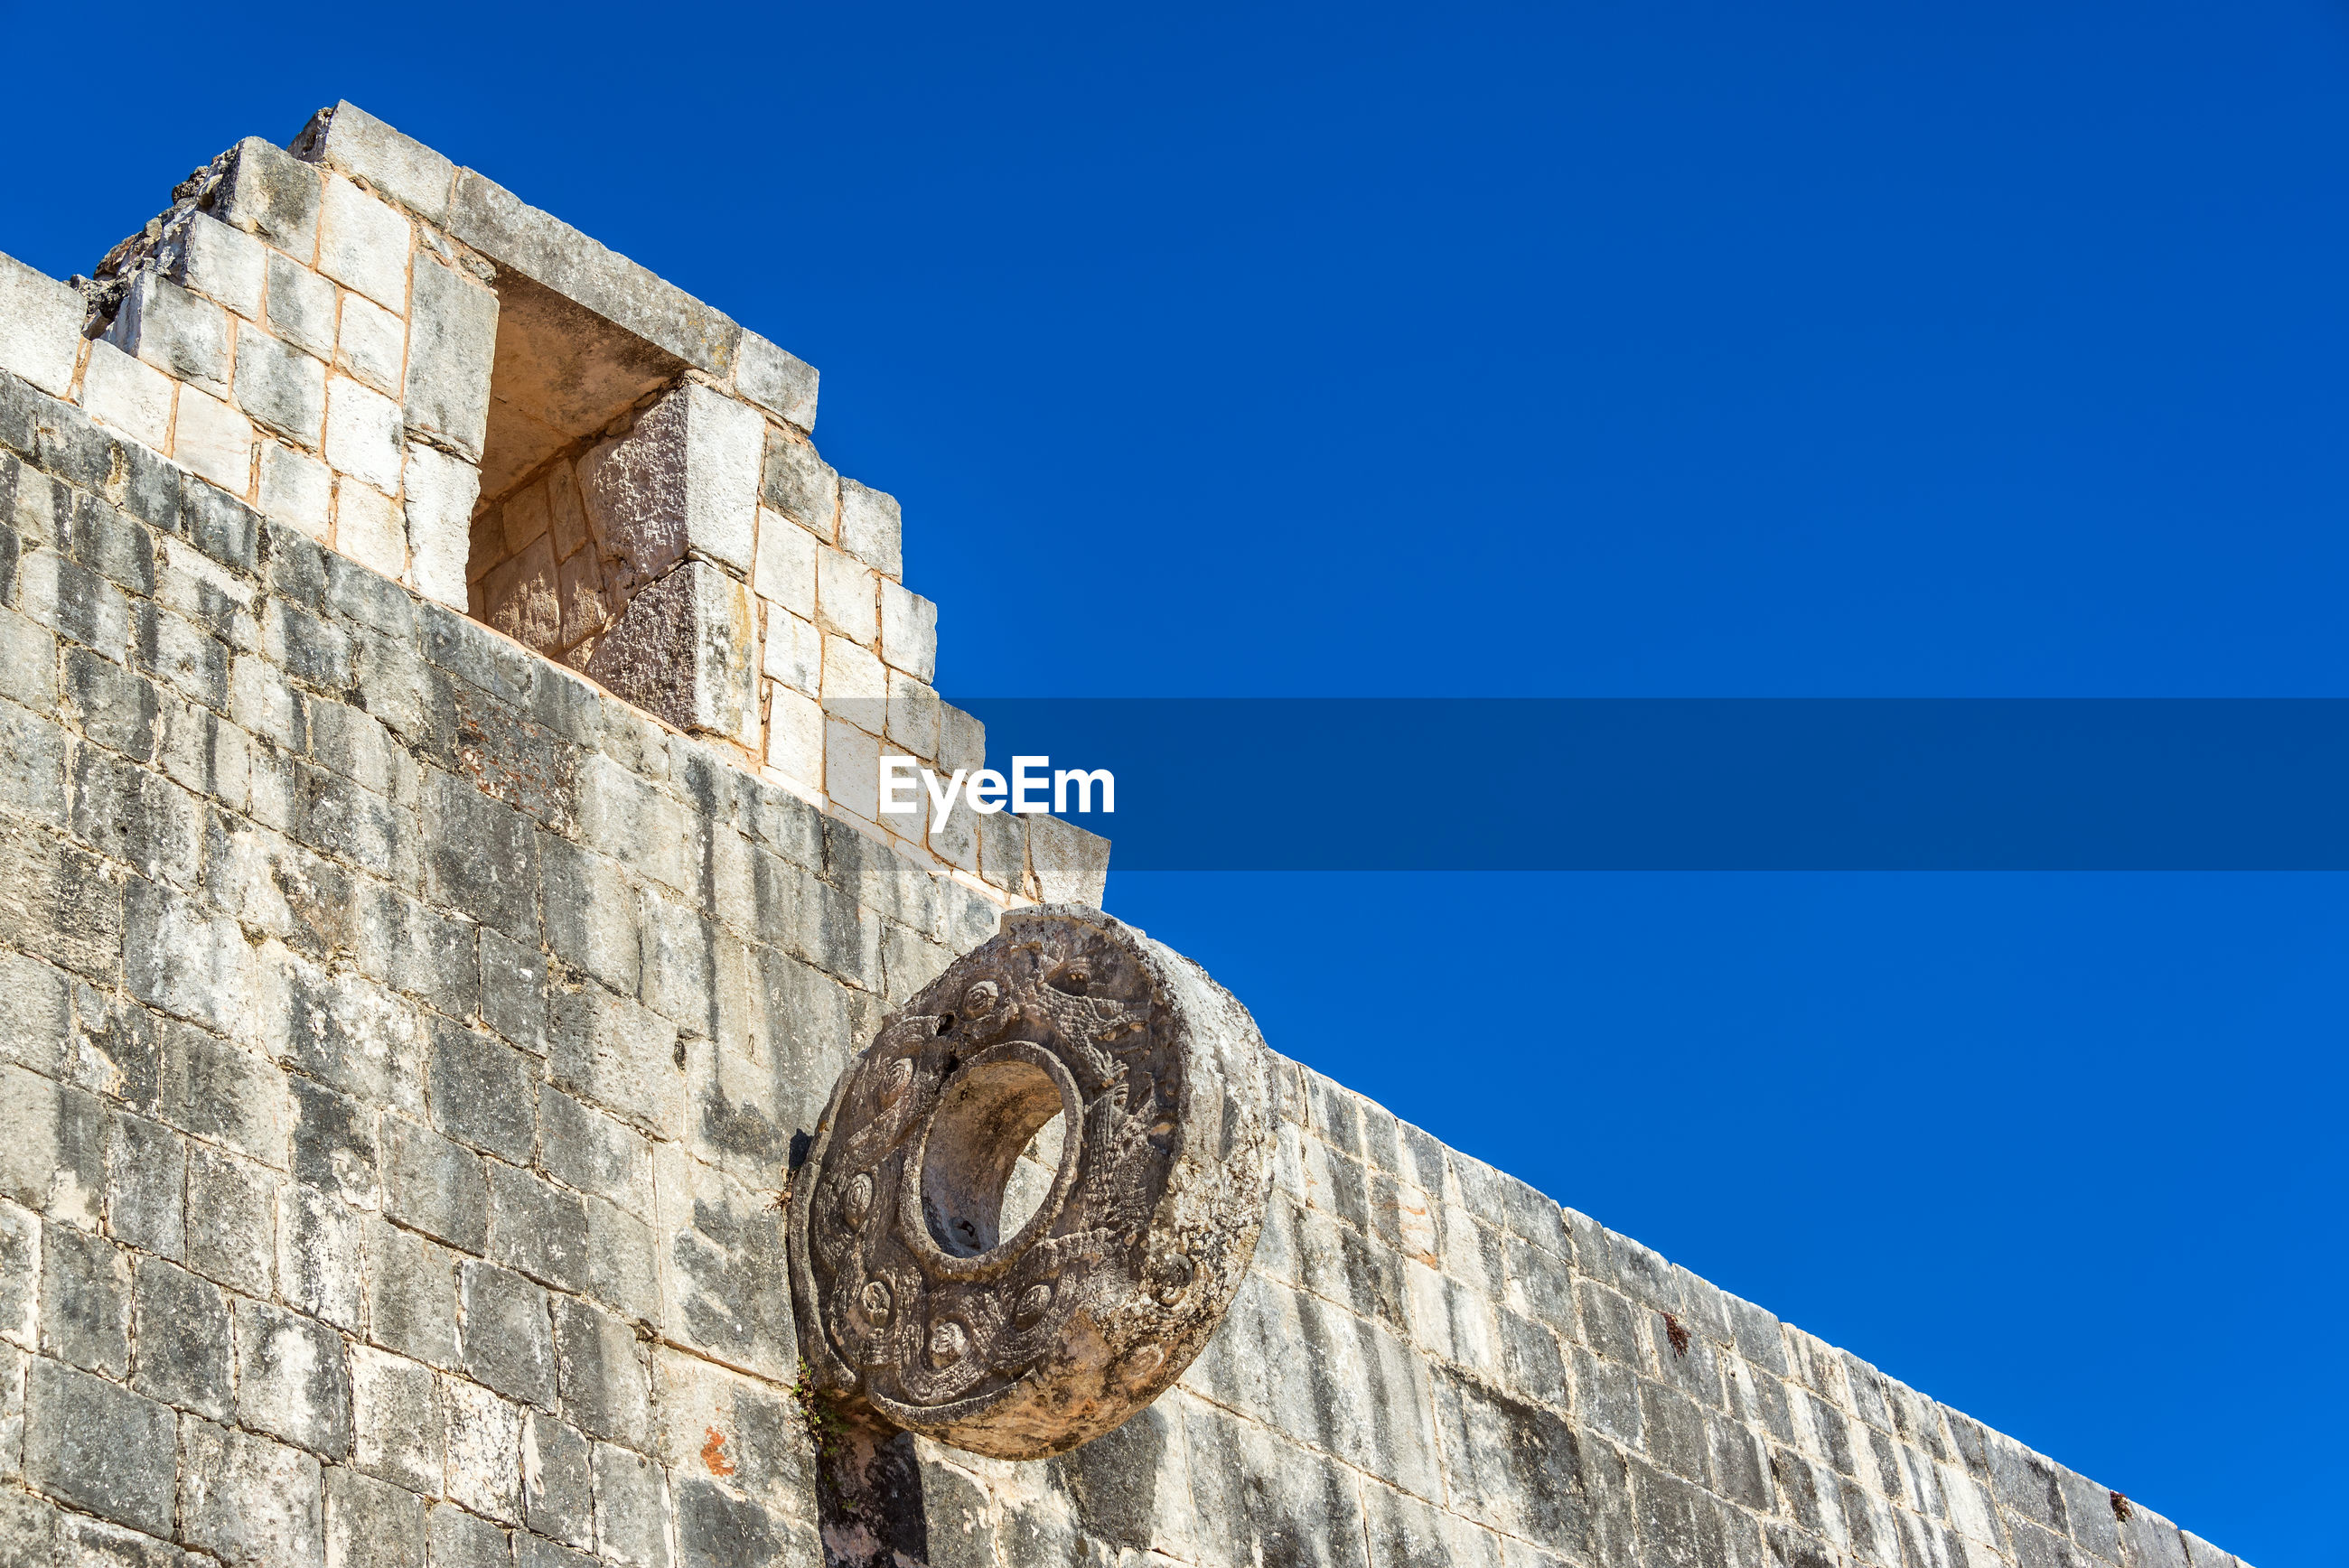 Low angle view of kukulkan pyramid against clear blue sky during sunny day